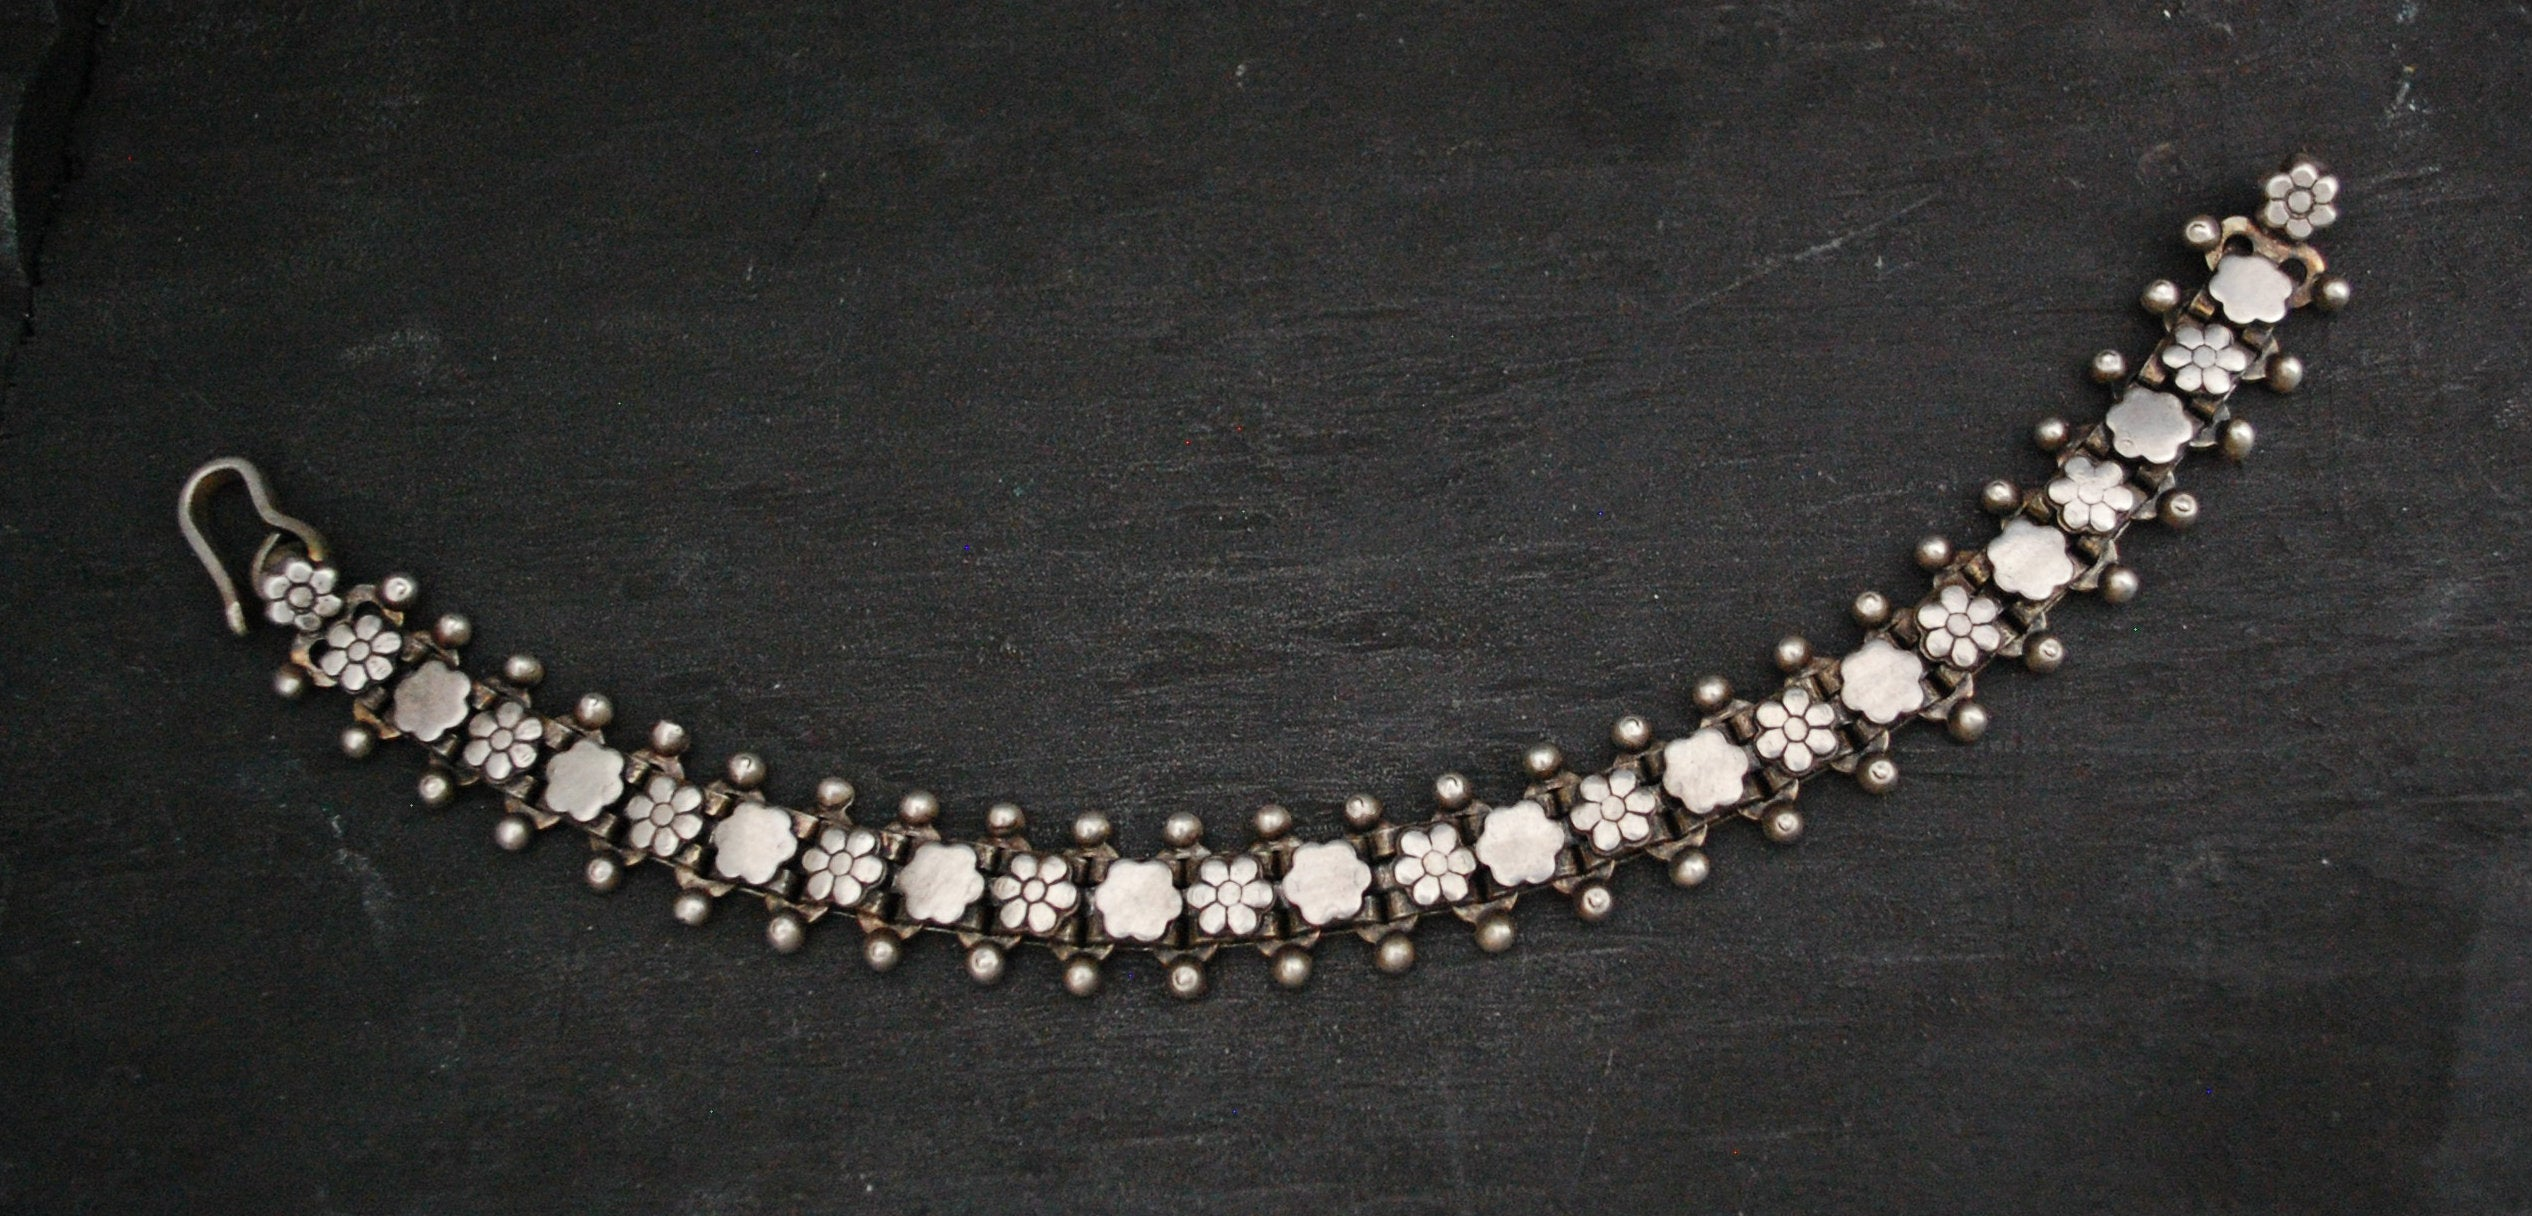 Rajasthani Silver Link Bracelet with Flower Design